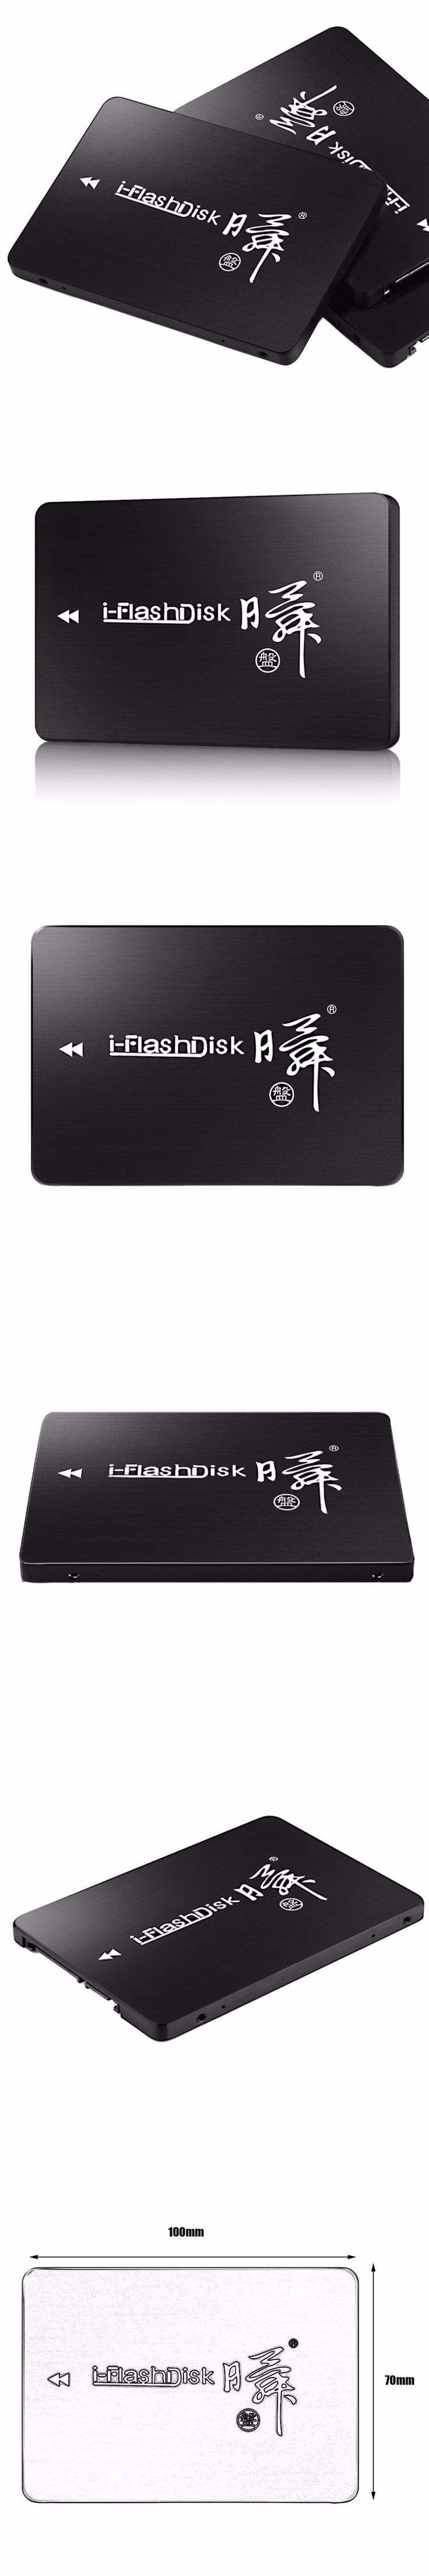 """Hard Drive Disk 2.5"""" SATA3 6GB/S High-Speed Transmission HD HDD SSD Smooth Game Operation With Cache 128GB 256GB Portable"""